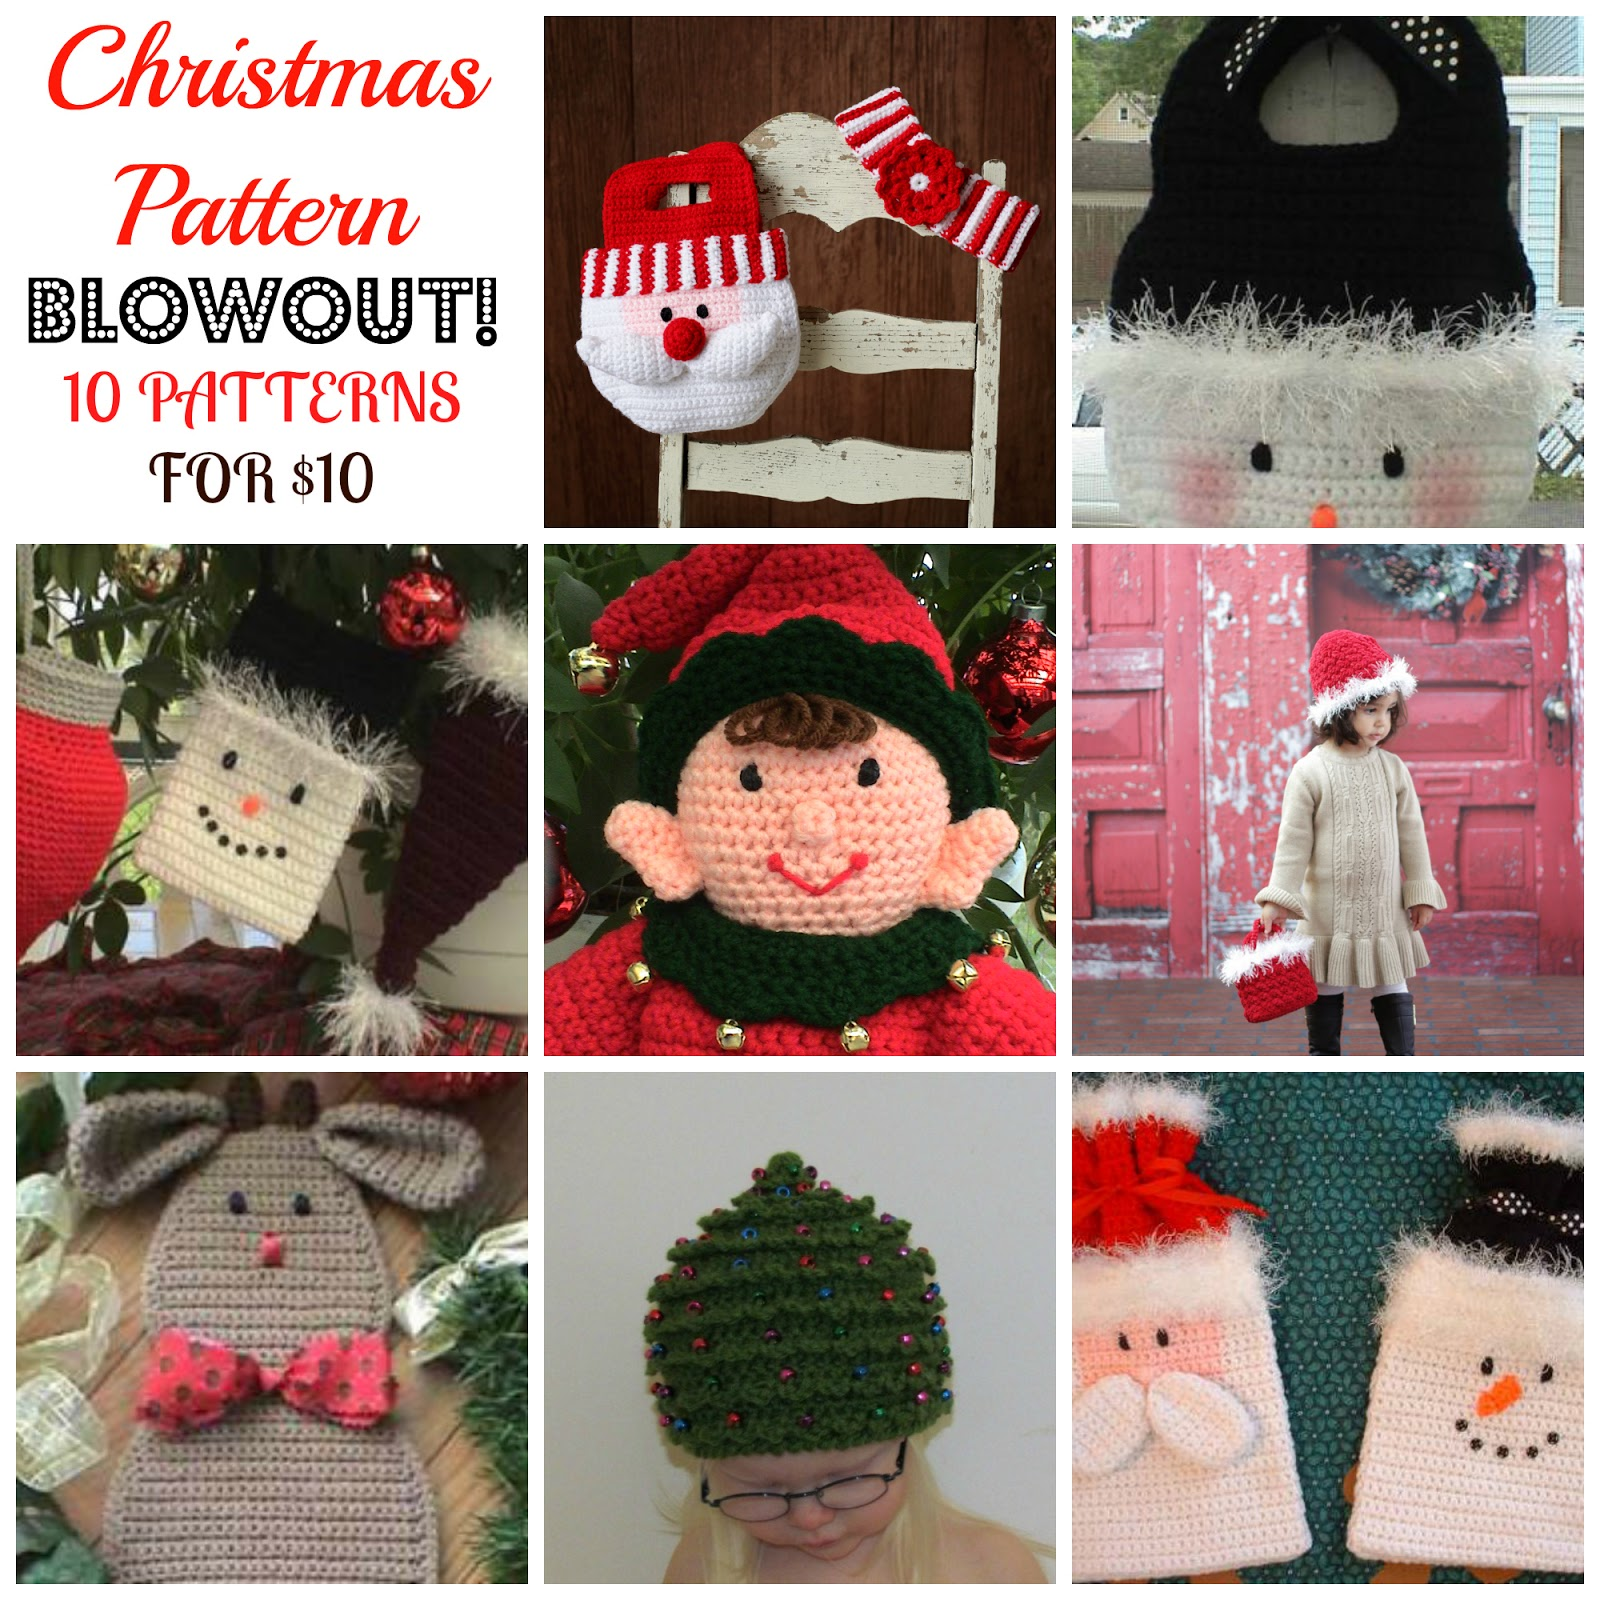 https://www.etsy.com/listing/215096392/sale-10-crochet-patterns-christmas-for